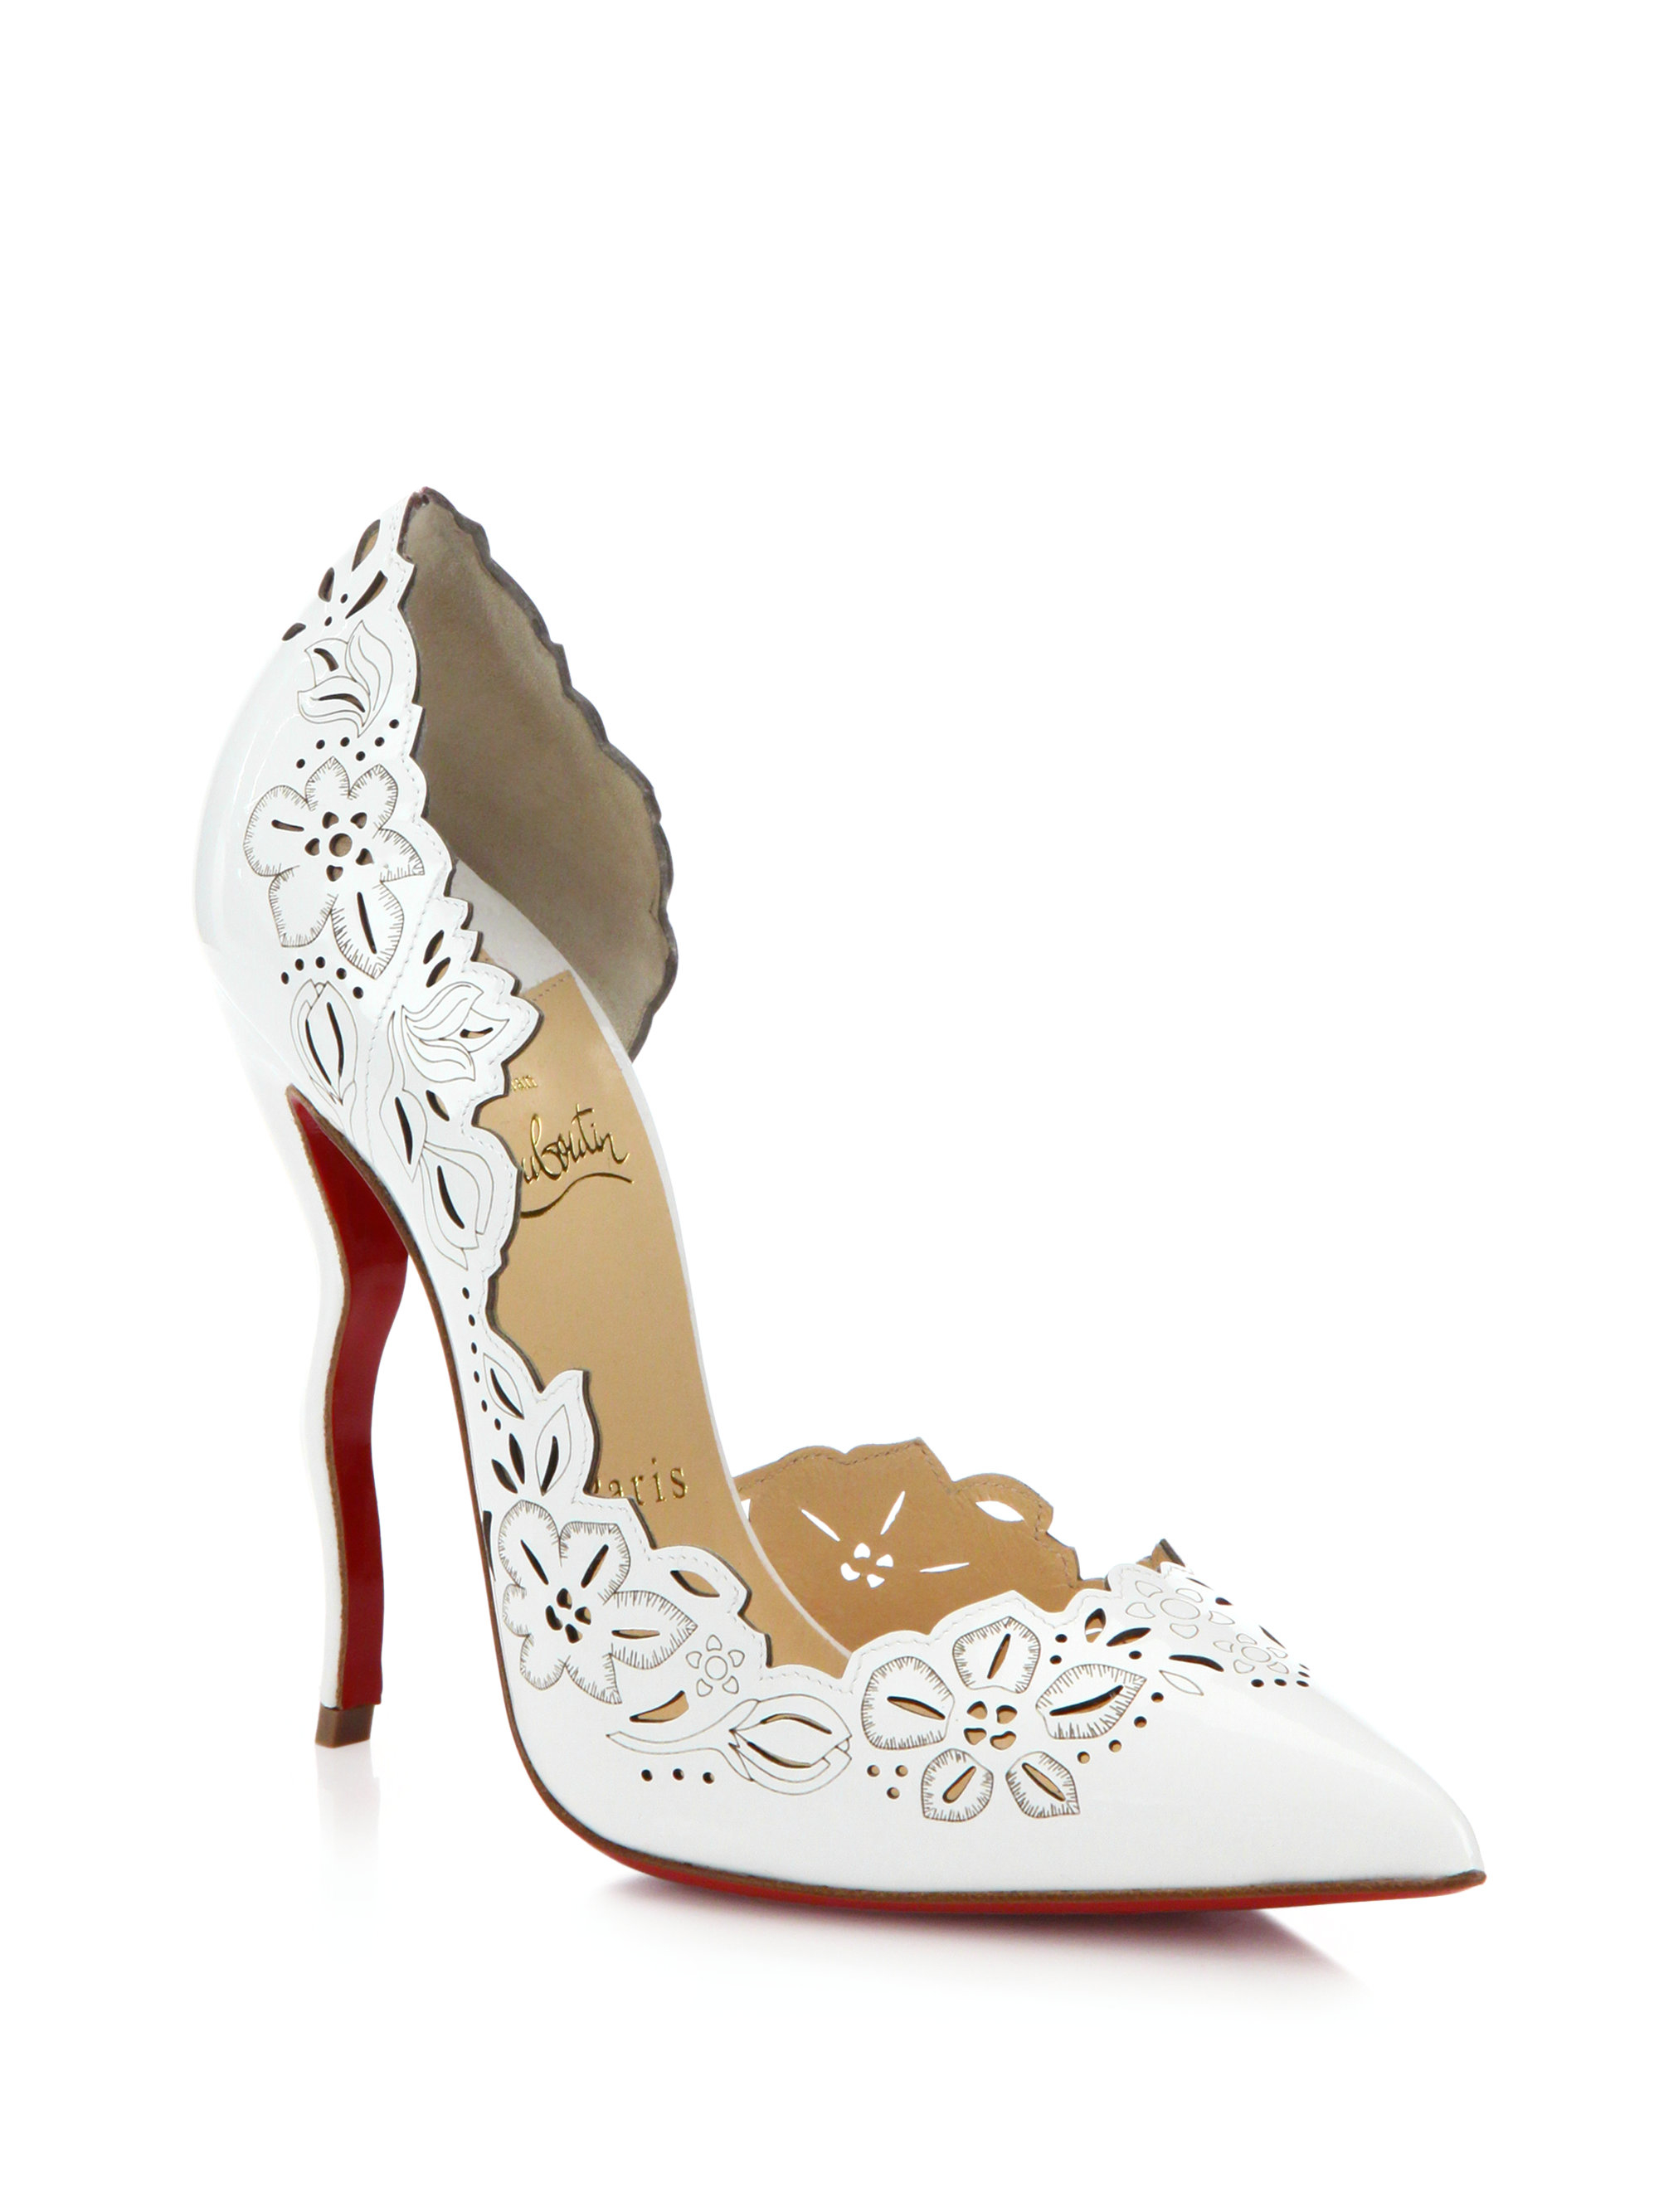 replica louboutin shoes - Christian louboutin Beloved Floral Cut-Out Leather Half D'Orsay ...